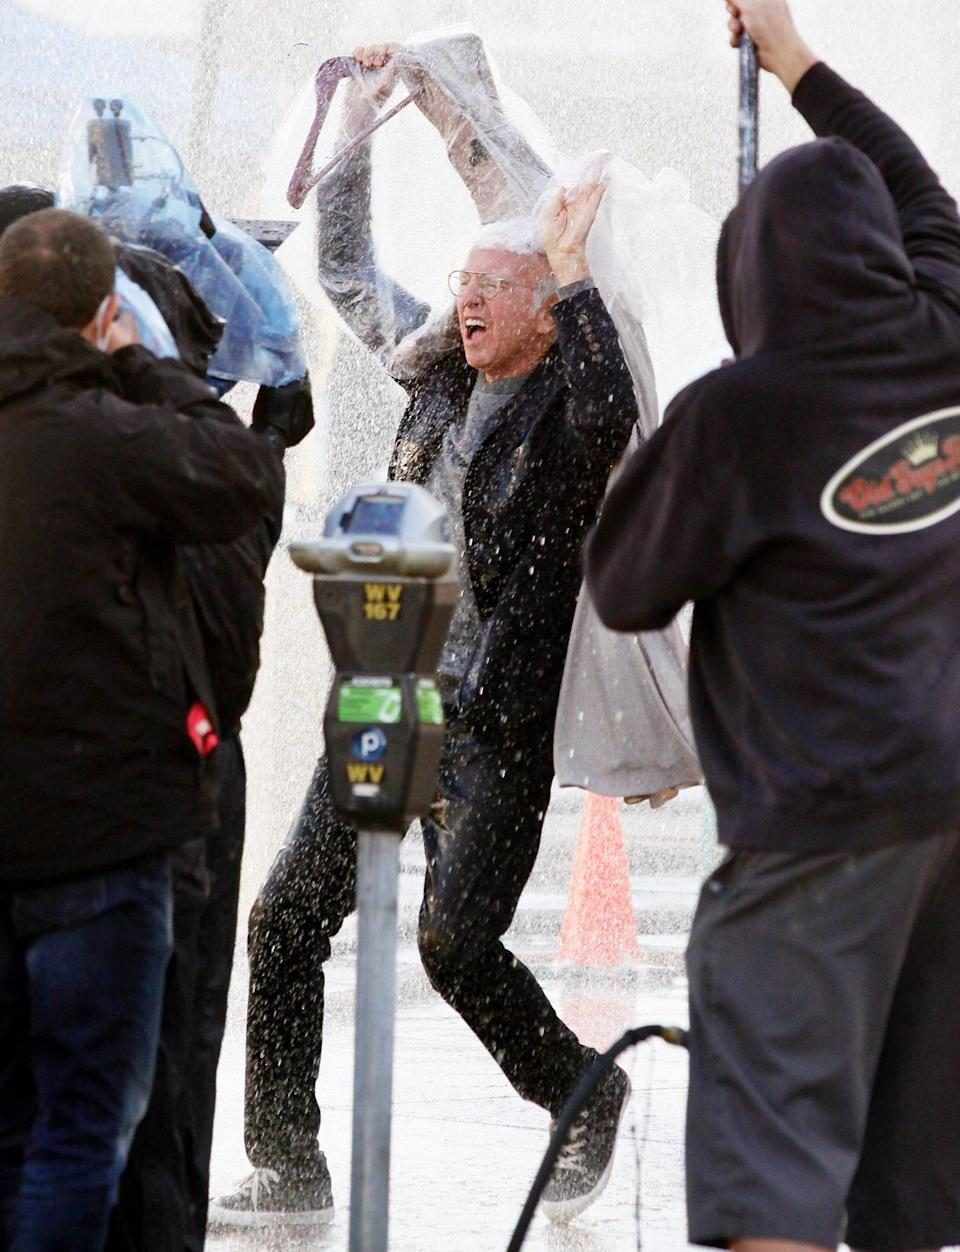 <p>Larry David gets soaked in the rain while filming <em>Curb Your Enthusiasm</em> for its upcoming season on Wednesday in L.A.</p>